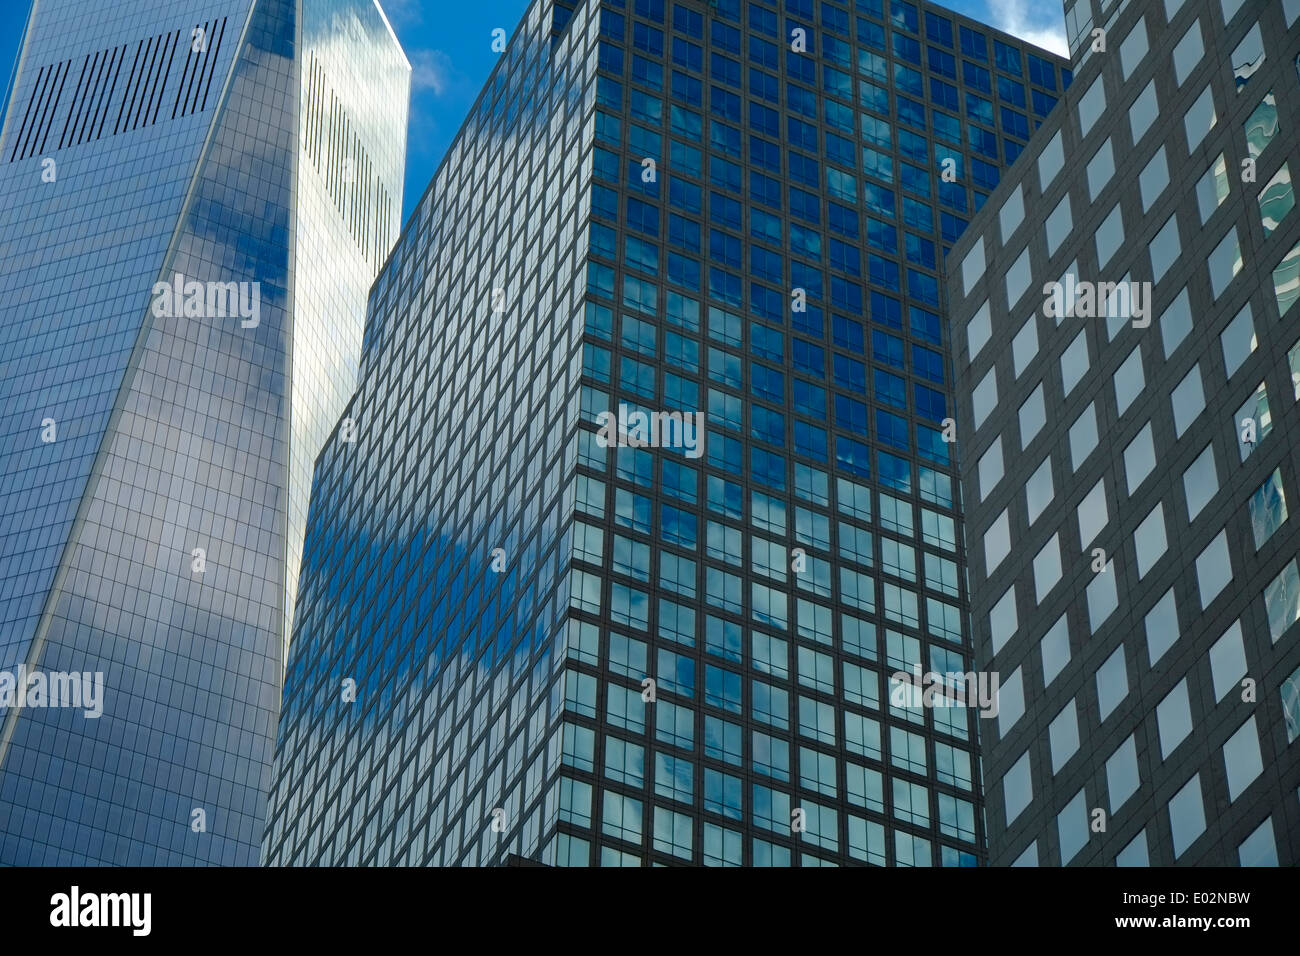 Immeubles de bureaux modernes, le quartier financier de Manhattan, New York Photo Stock